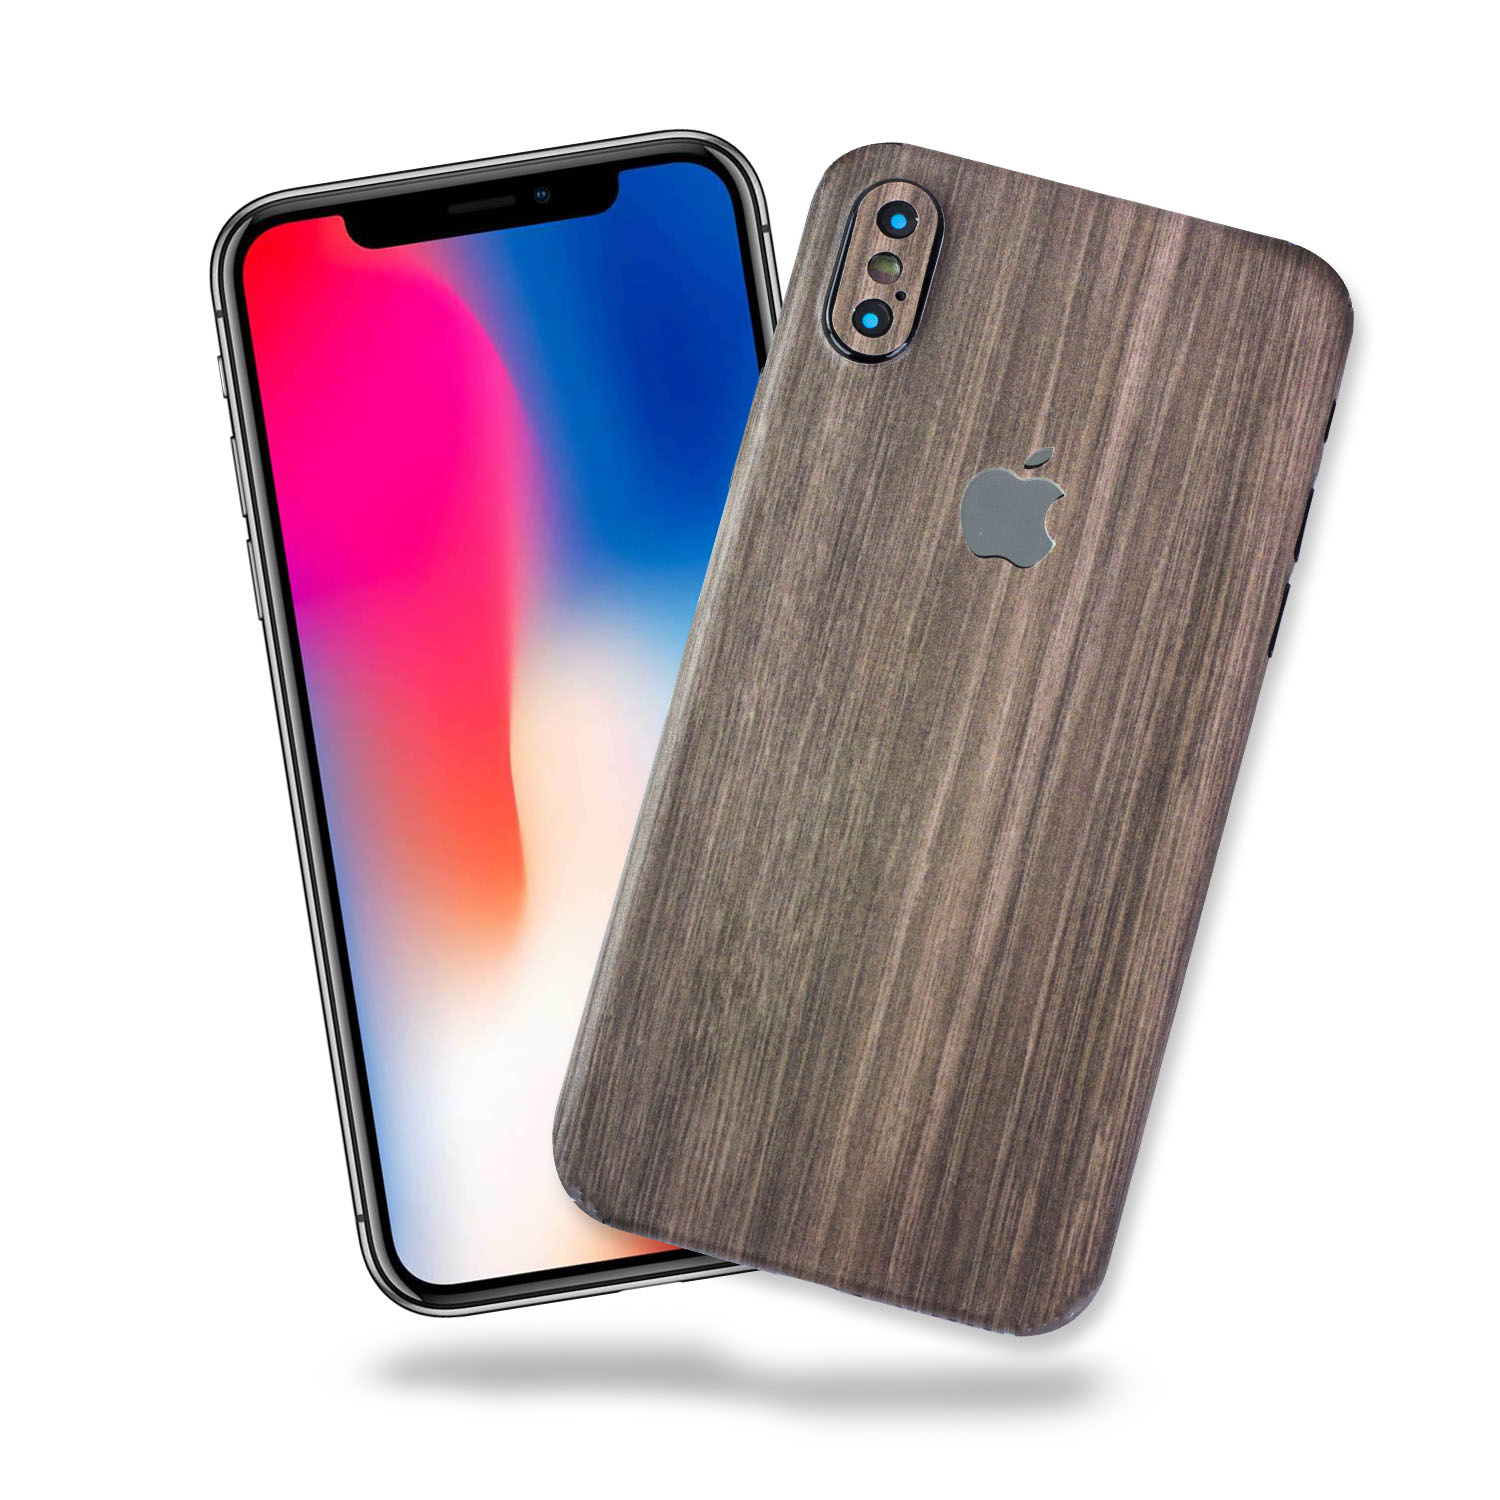 Apple iPhone X Vinyl Skin Decal, Anti-Scratch Skin Cover for Apple iPhone X Brown Wood Texture (1-Back & 4-Camera) by SkylerShield